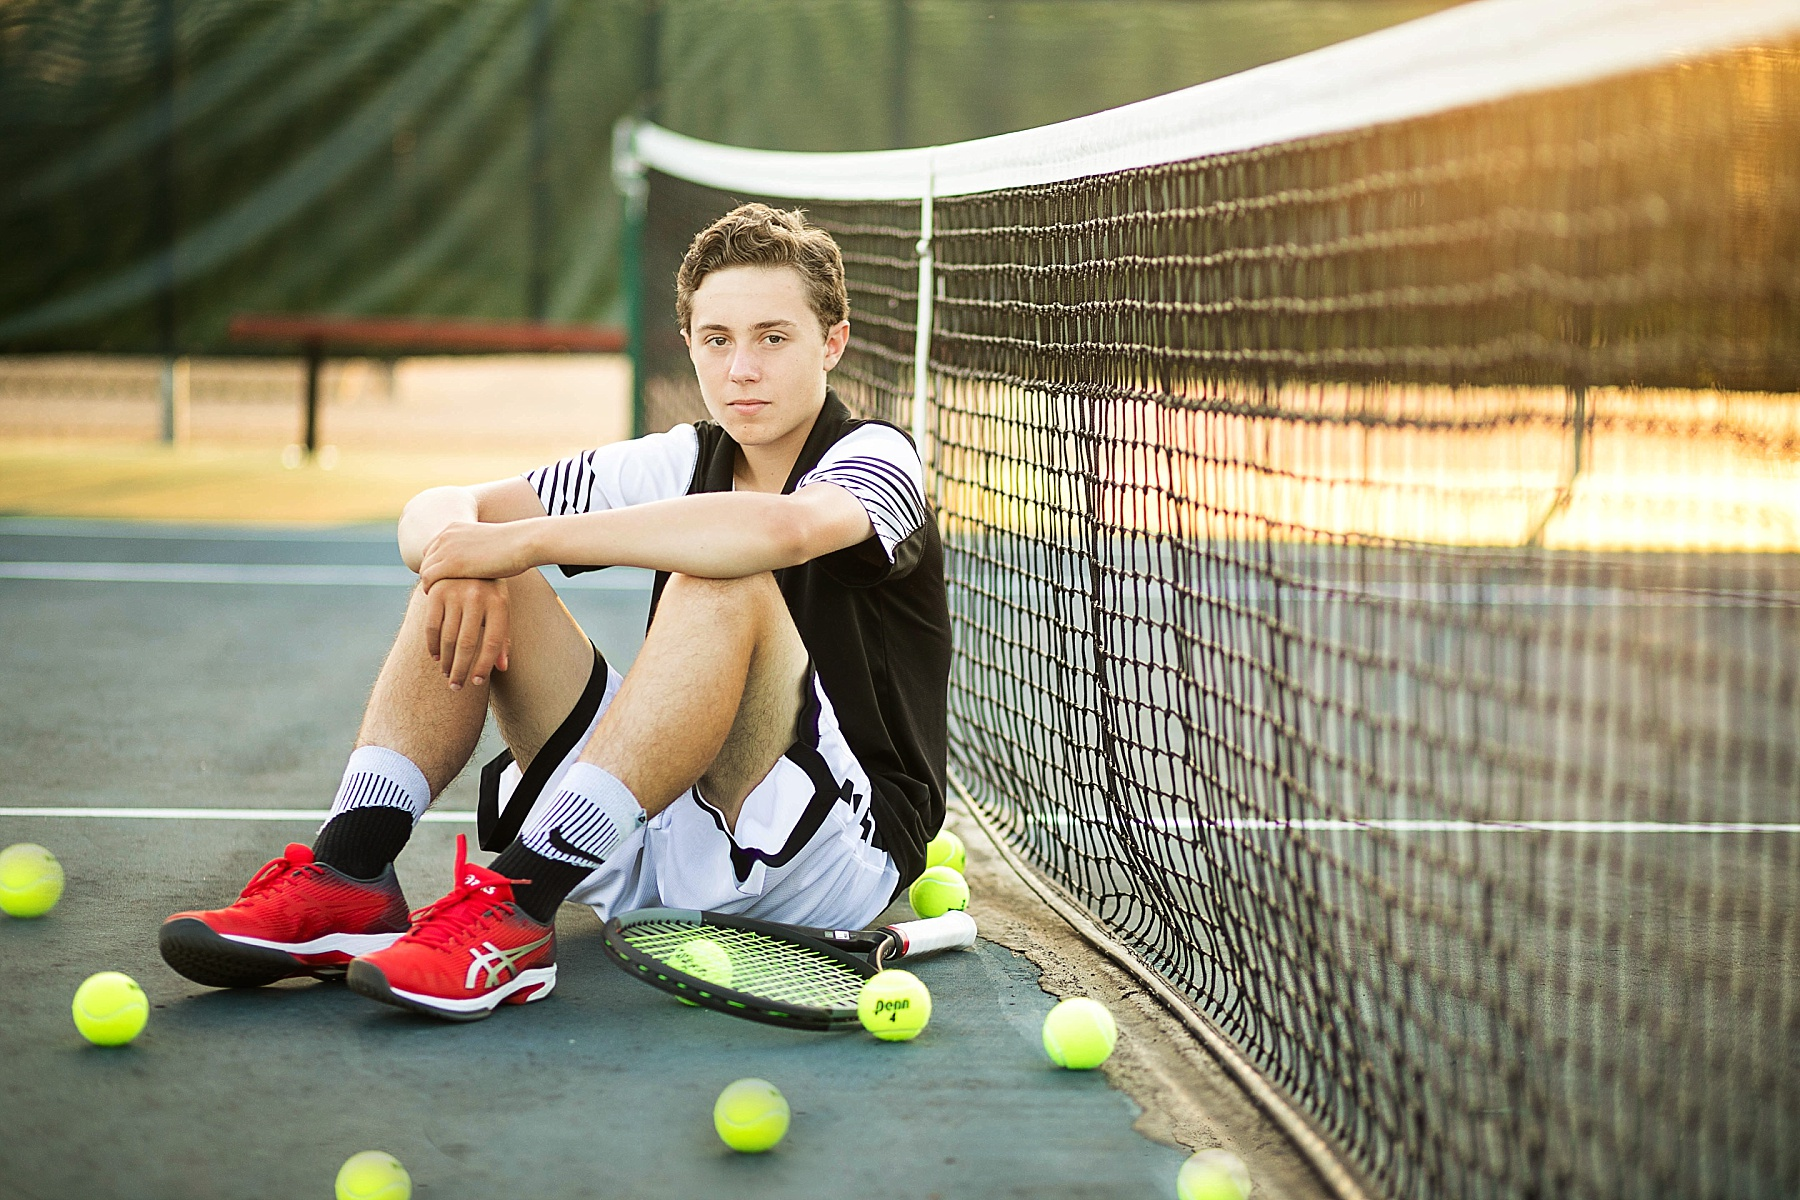 boy sitting against a tennis net at chi hi with his uniform on and tennis balls around him